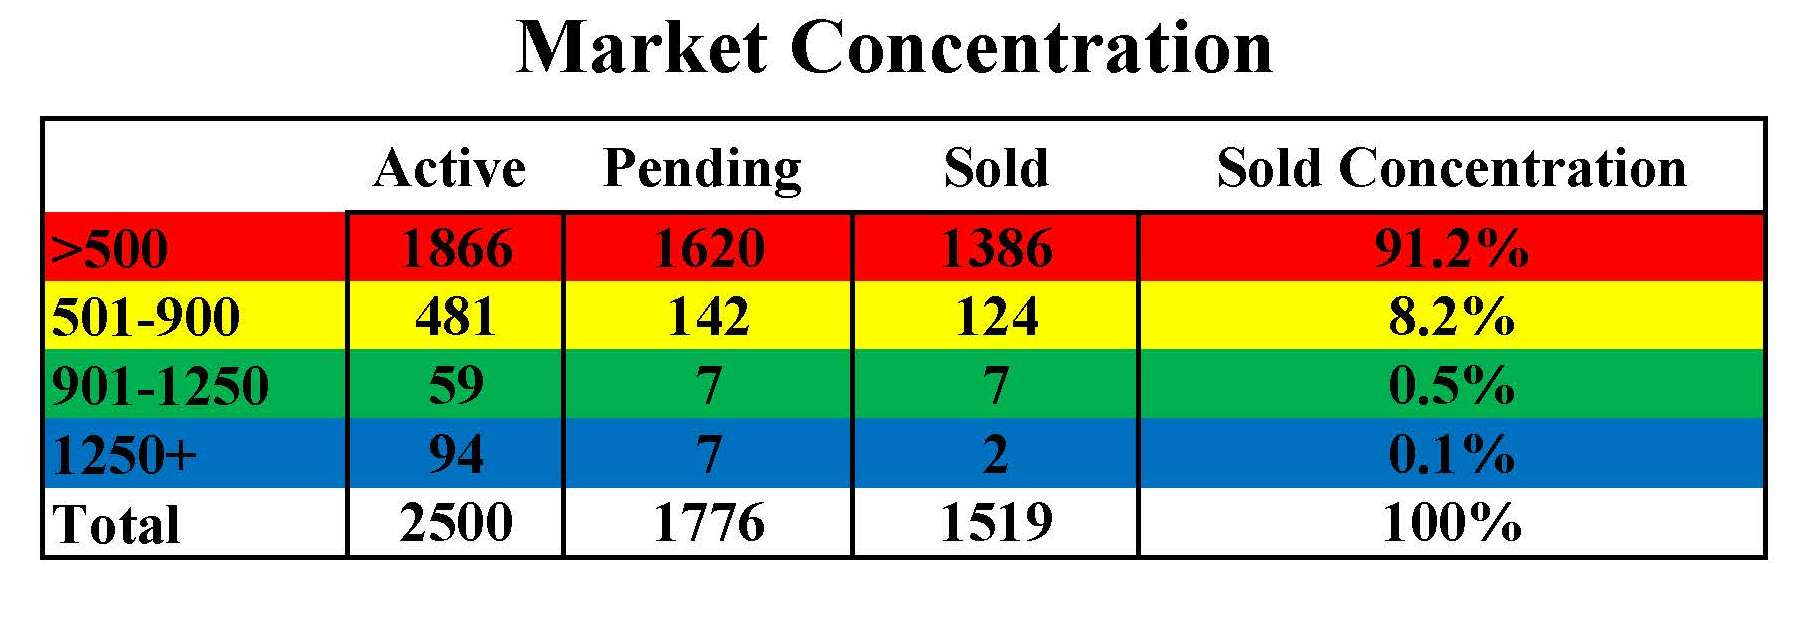 Homeowners archives michael robinson market concentration chart nvjuhfo Choice Image